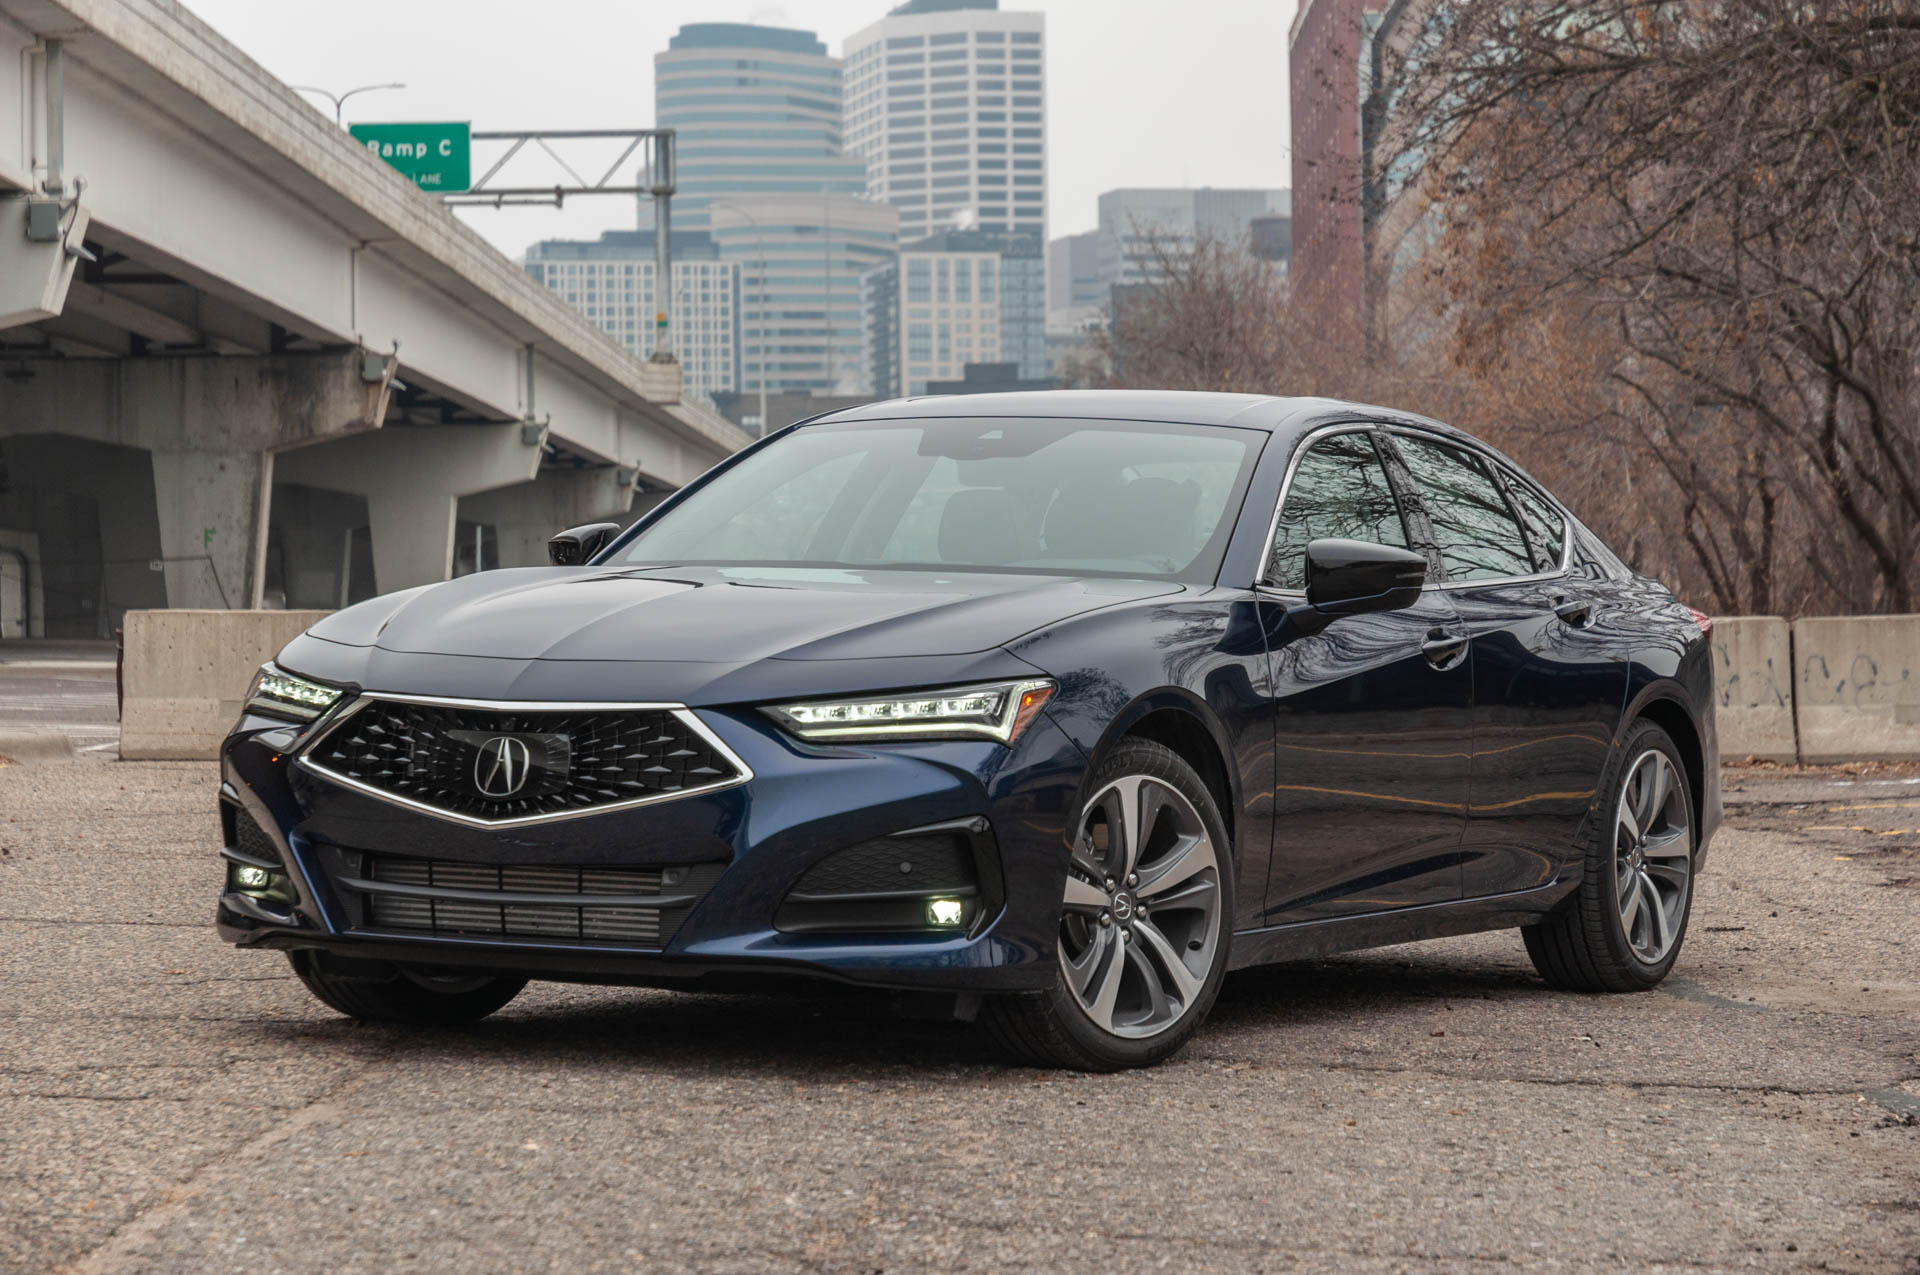 Review update: Improved 2021 Acura TLX missed its chance for greatness